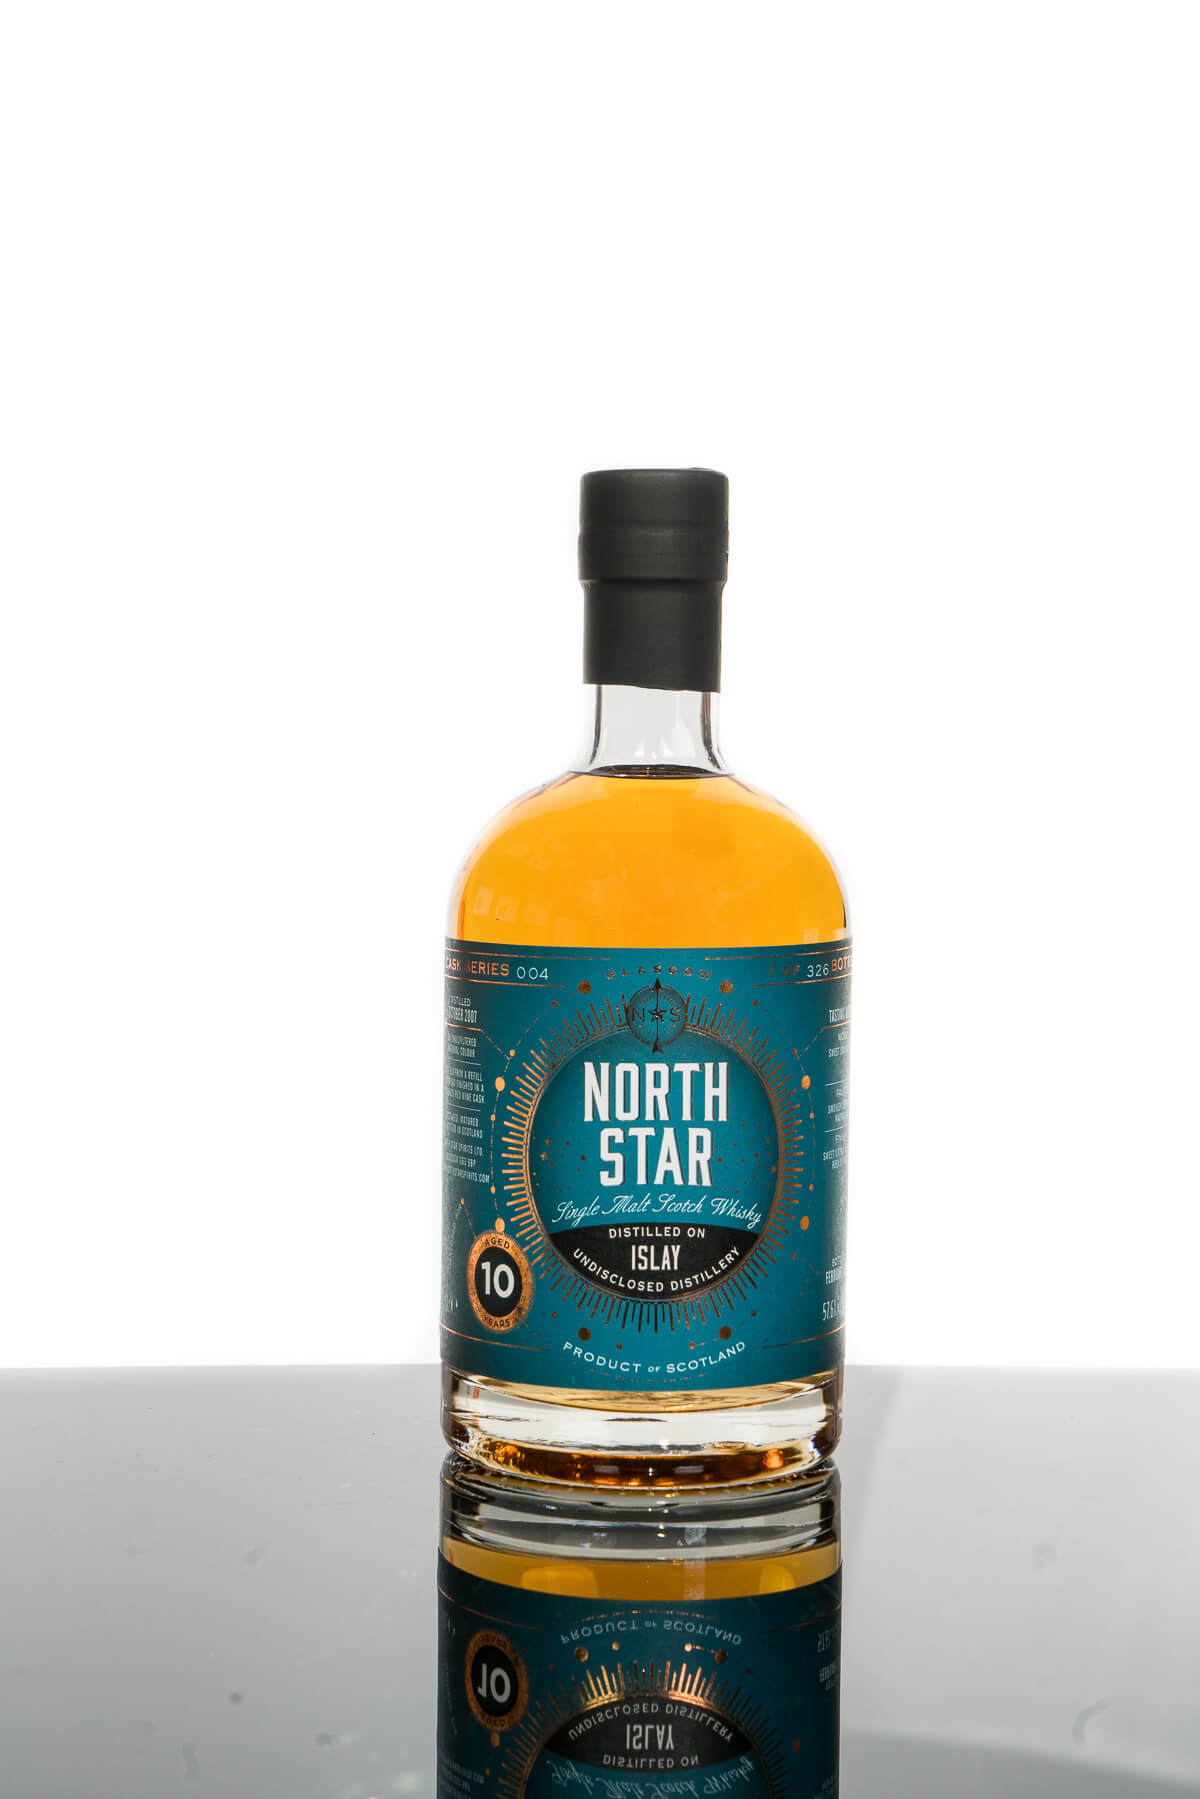 Islay 2007 Aged 10 Years Single Malt Scotch Whisky - North Star (700ml)